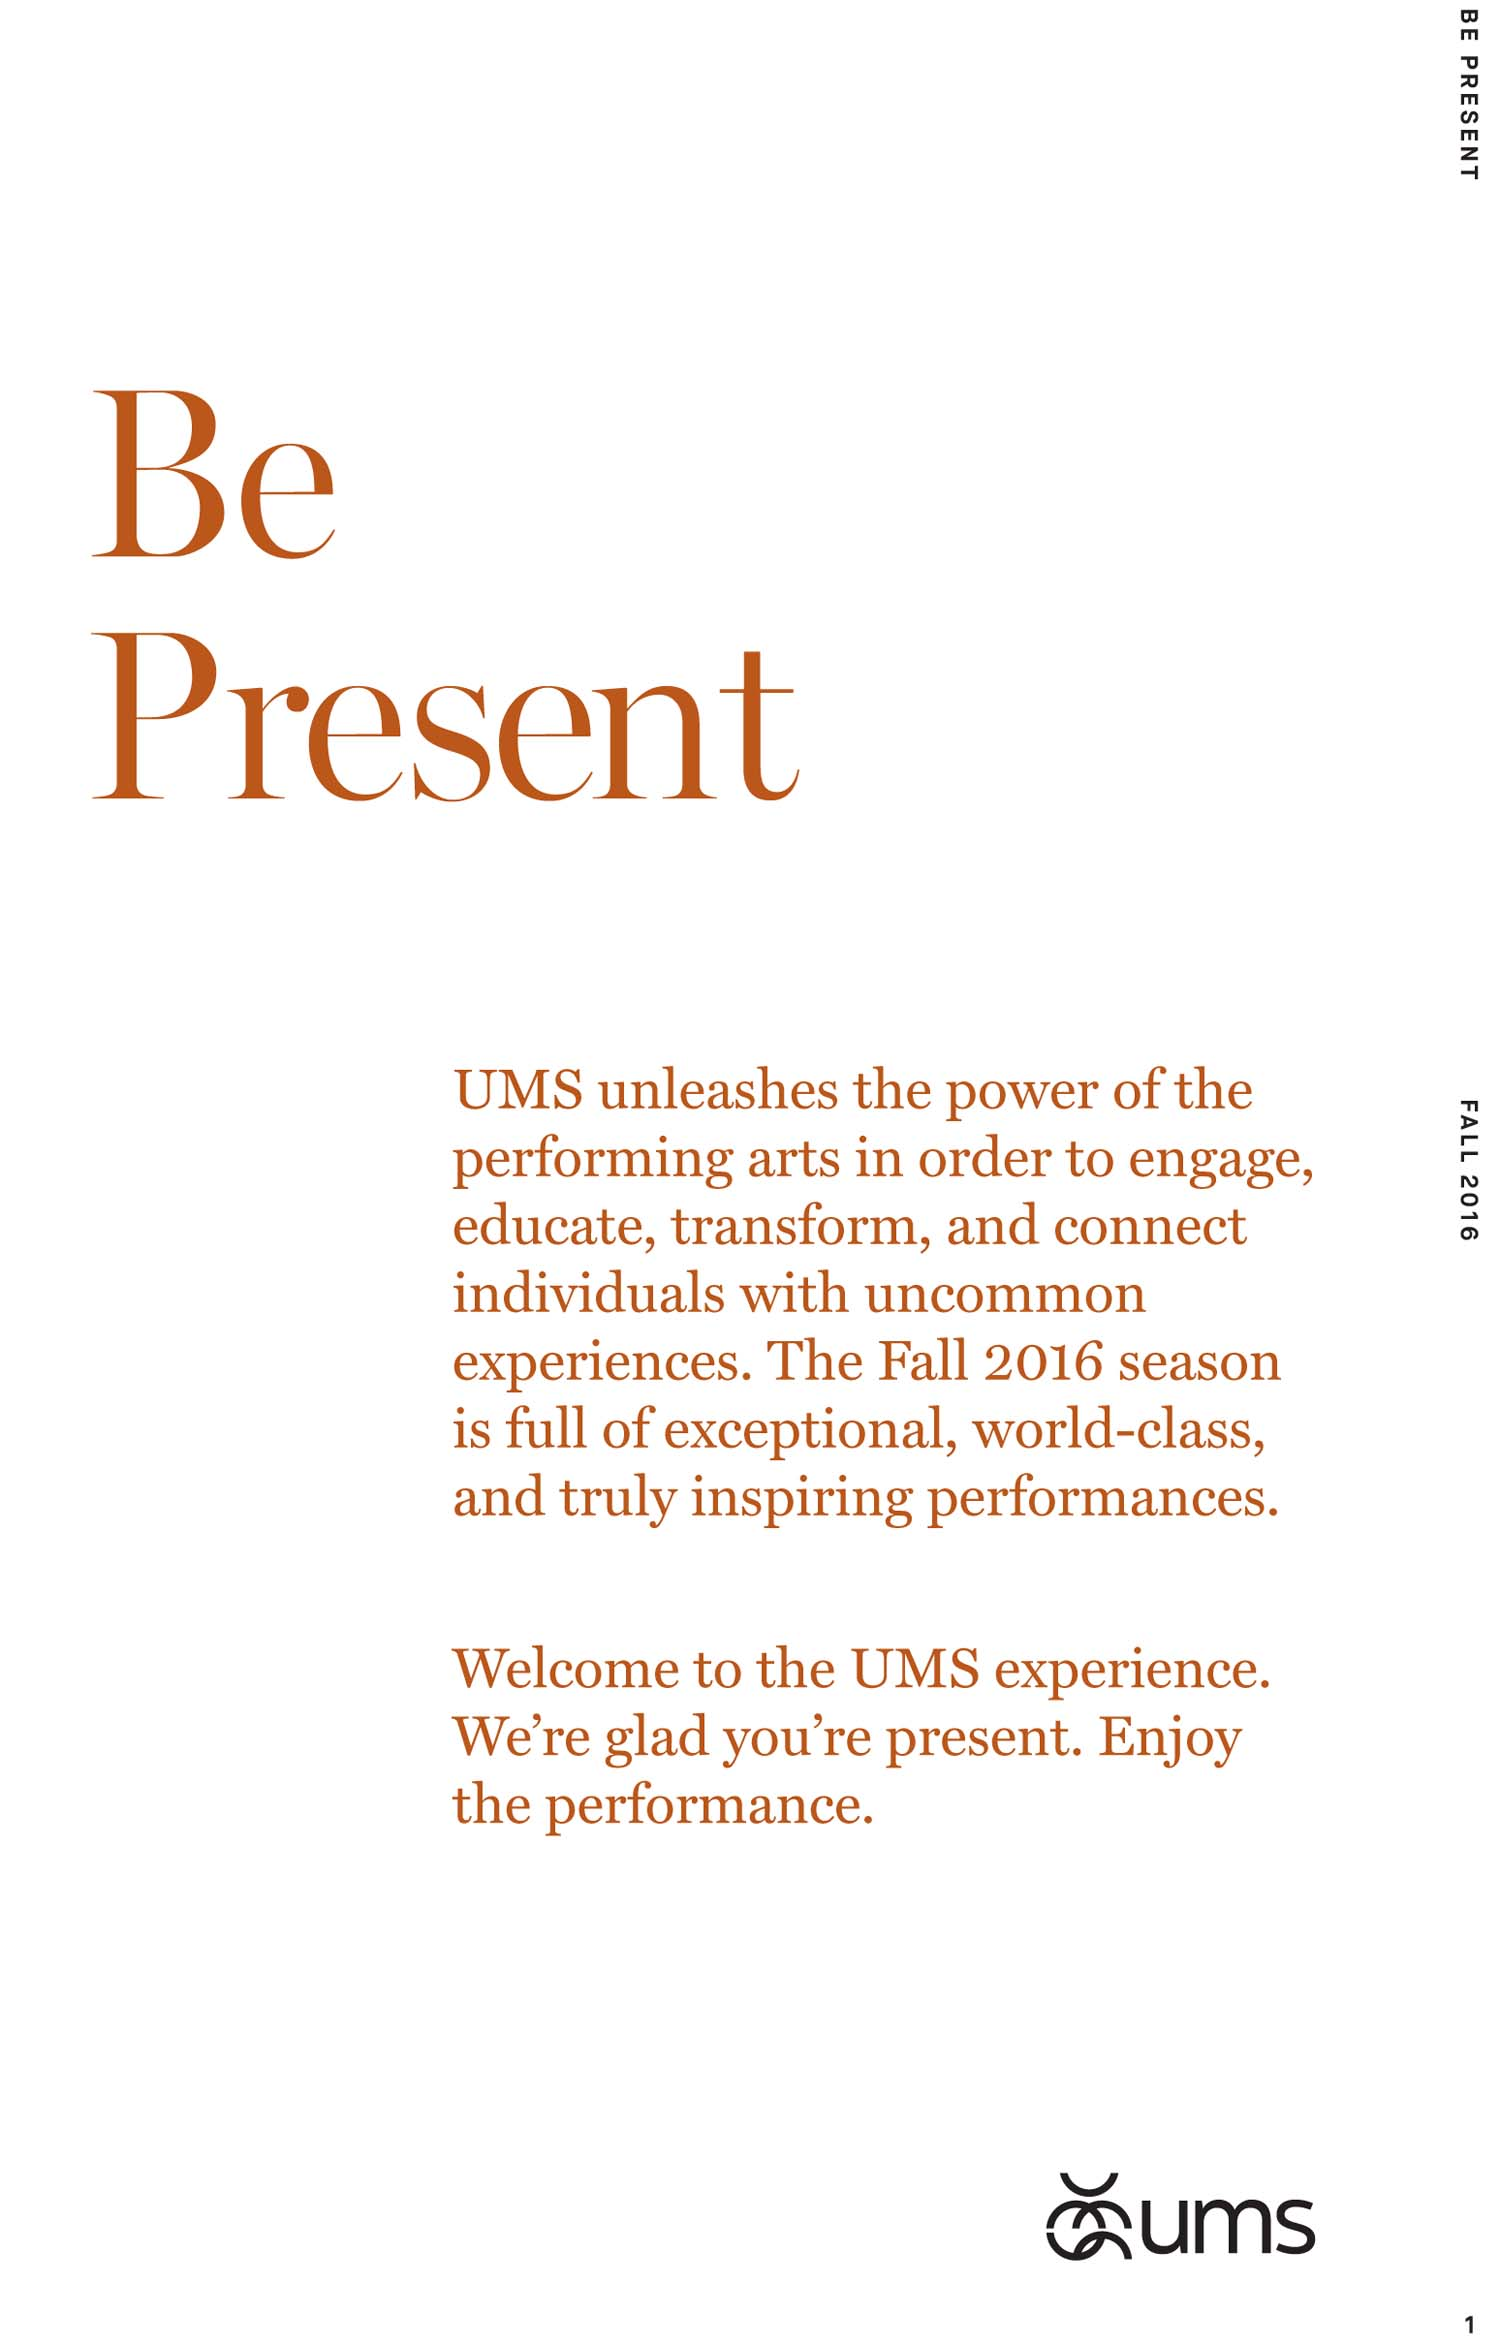 UMS Concert Program, October 13, 2016 - October 15, 2016 - Layla and Majnun image